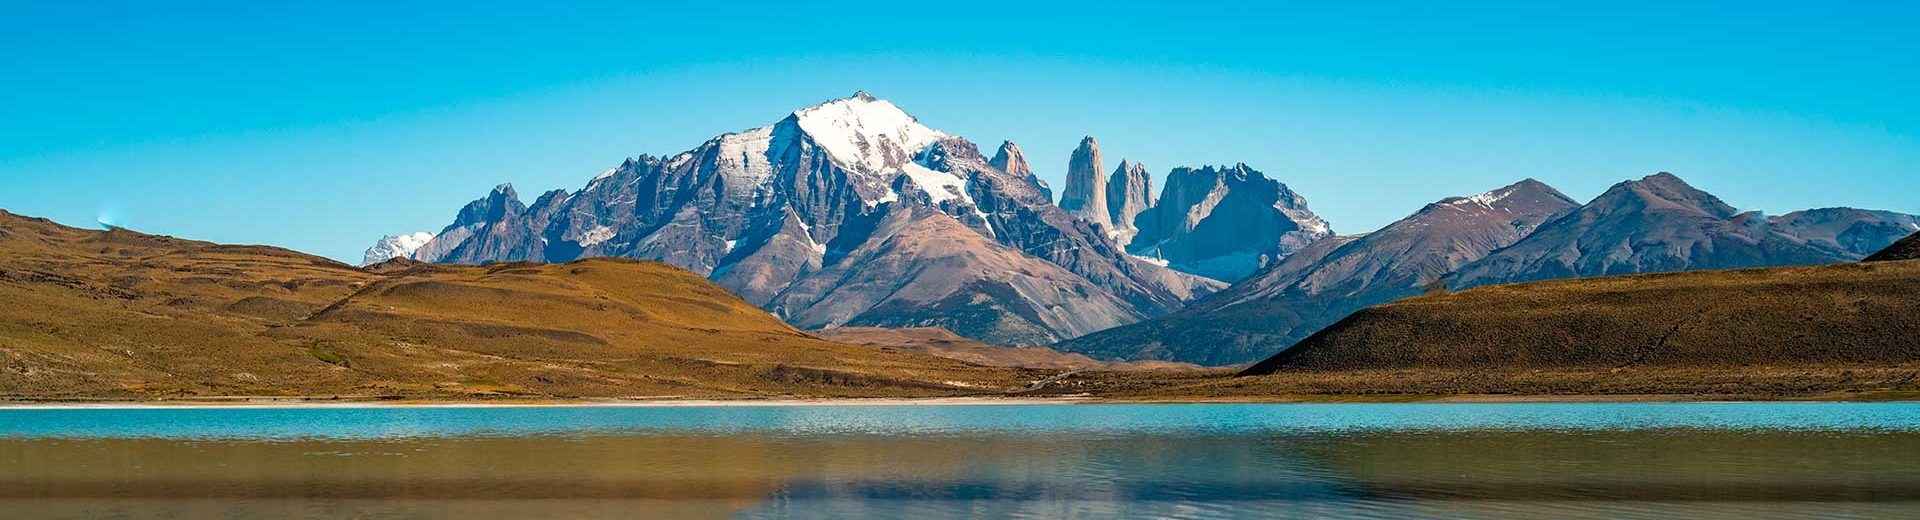 patagonia national park chile